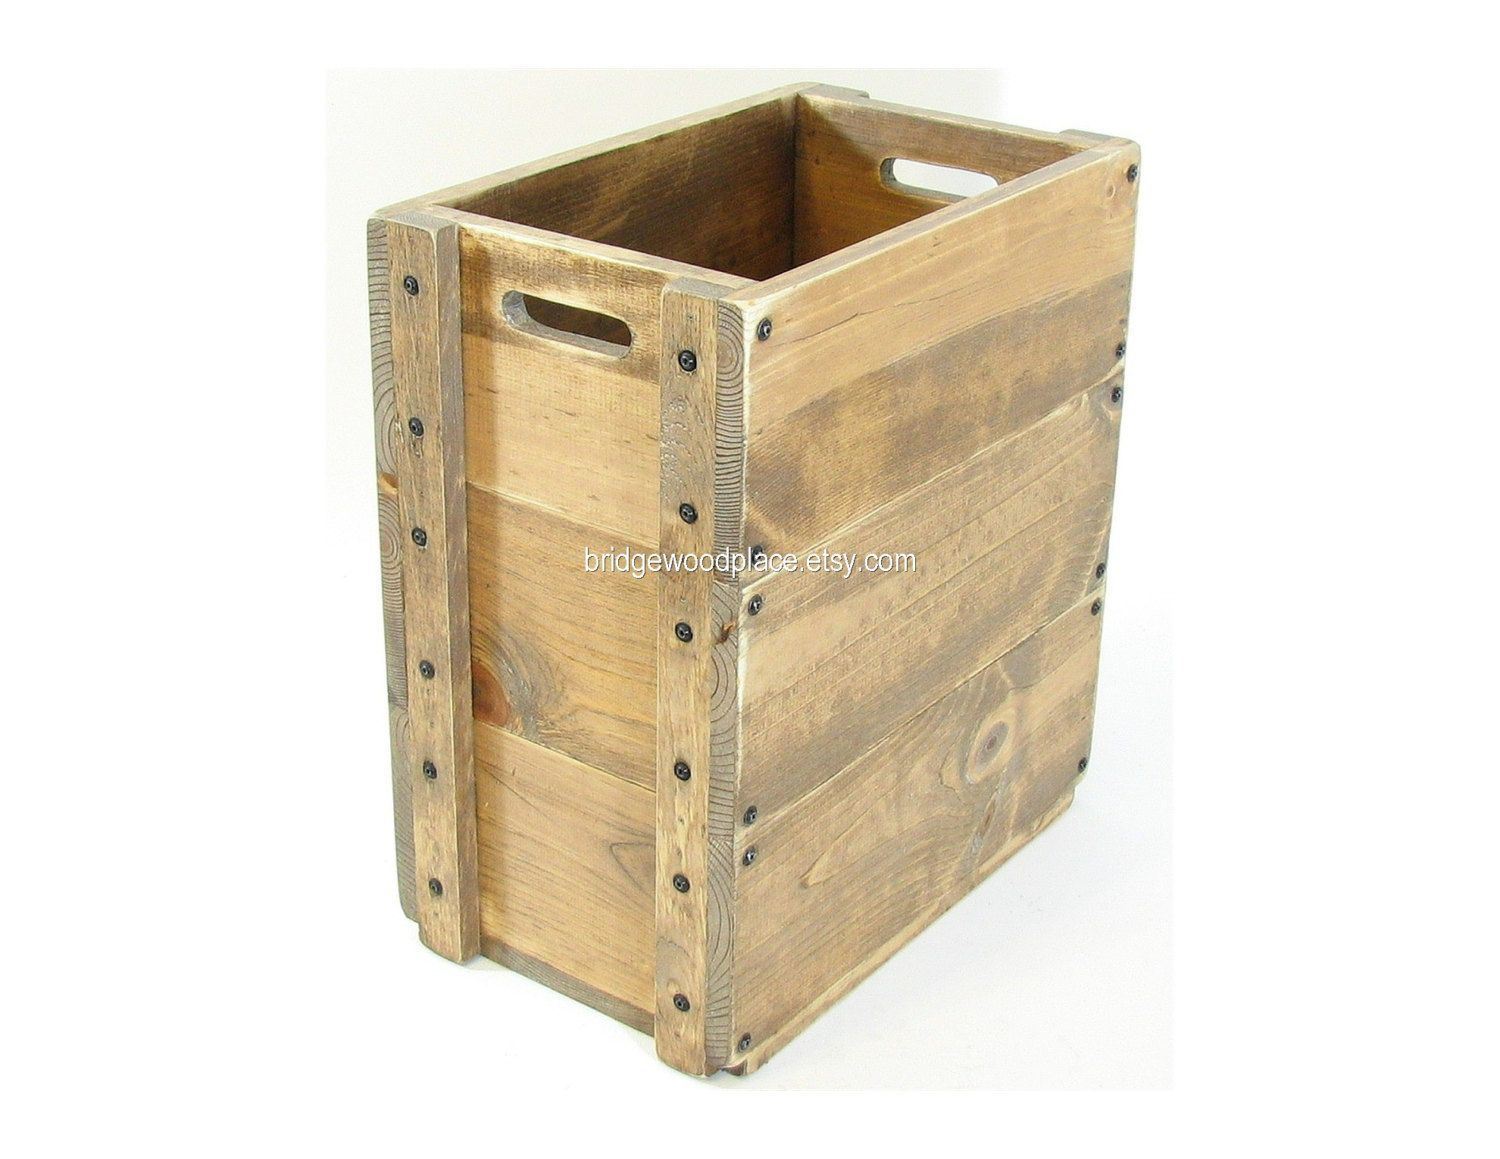 Wooden Crate Furniture Tall Wood Box Sofa Or By Bridgewoodplace